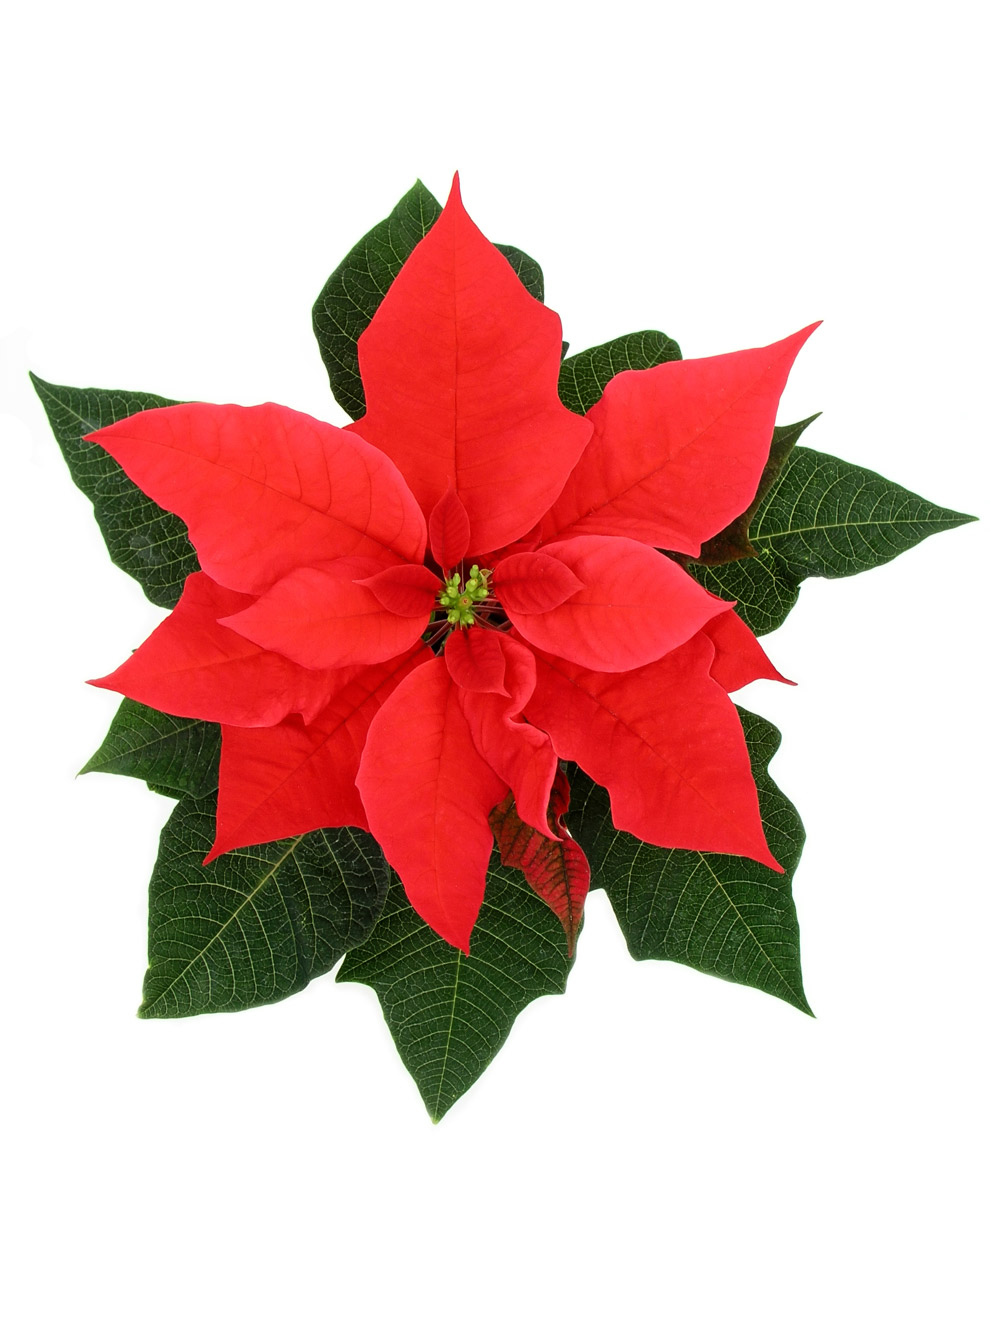 Poinsettia Flower Pictures - Cliparts.co